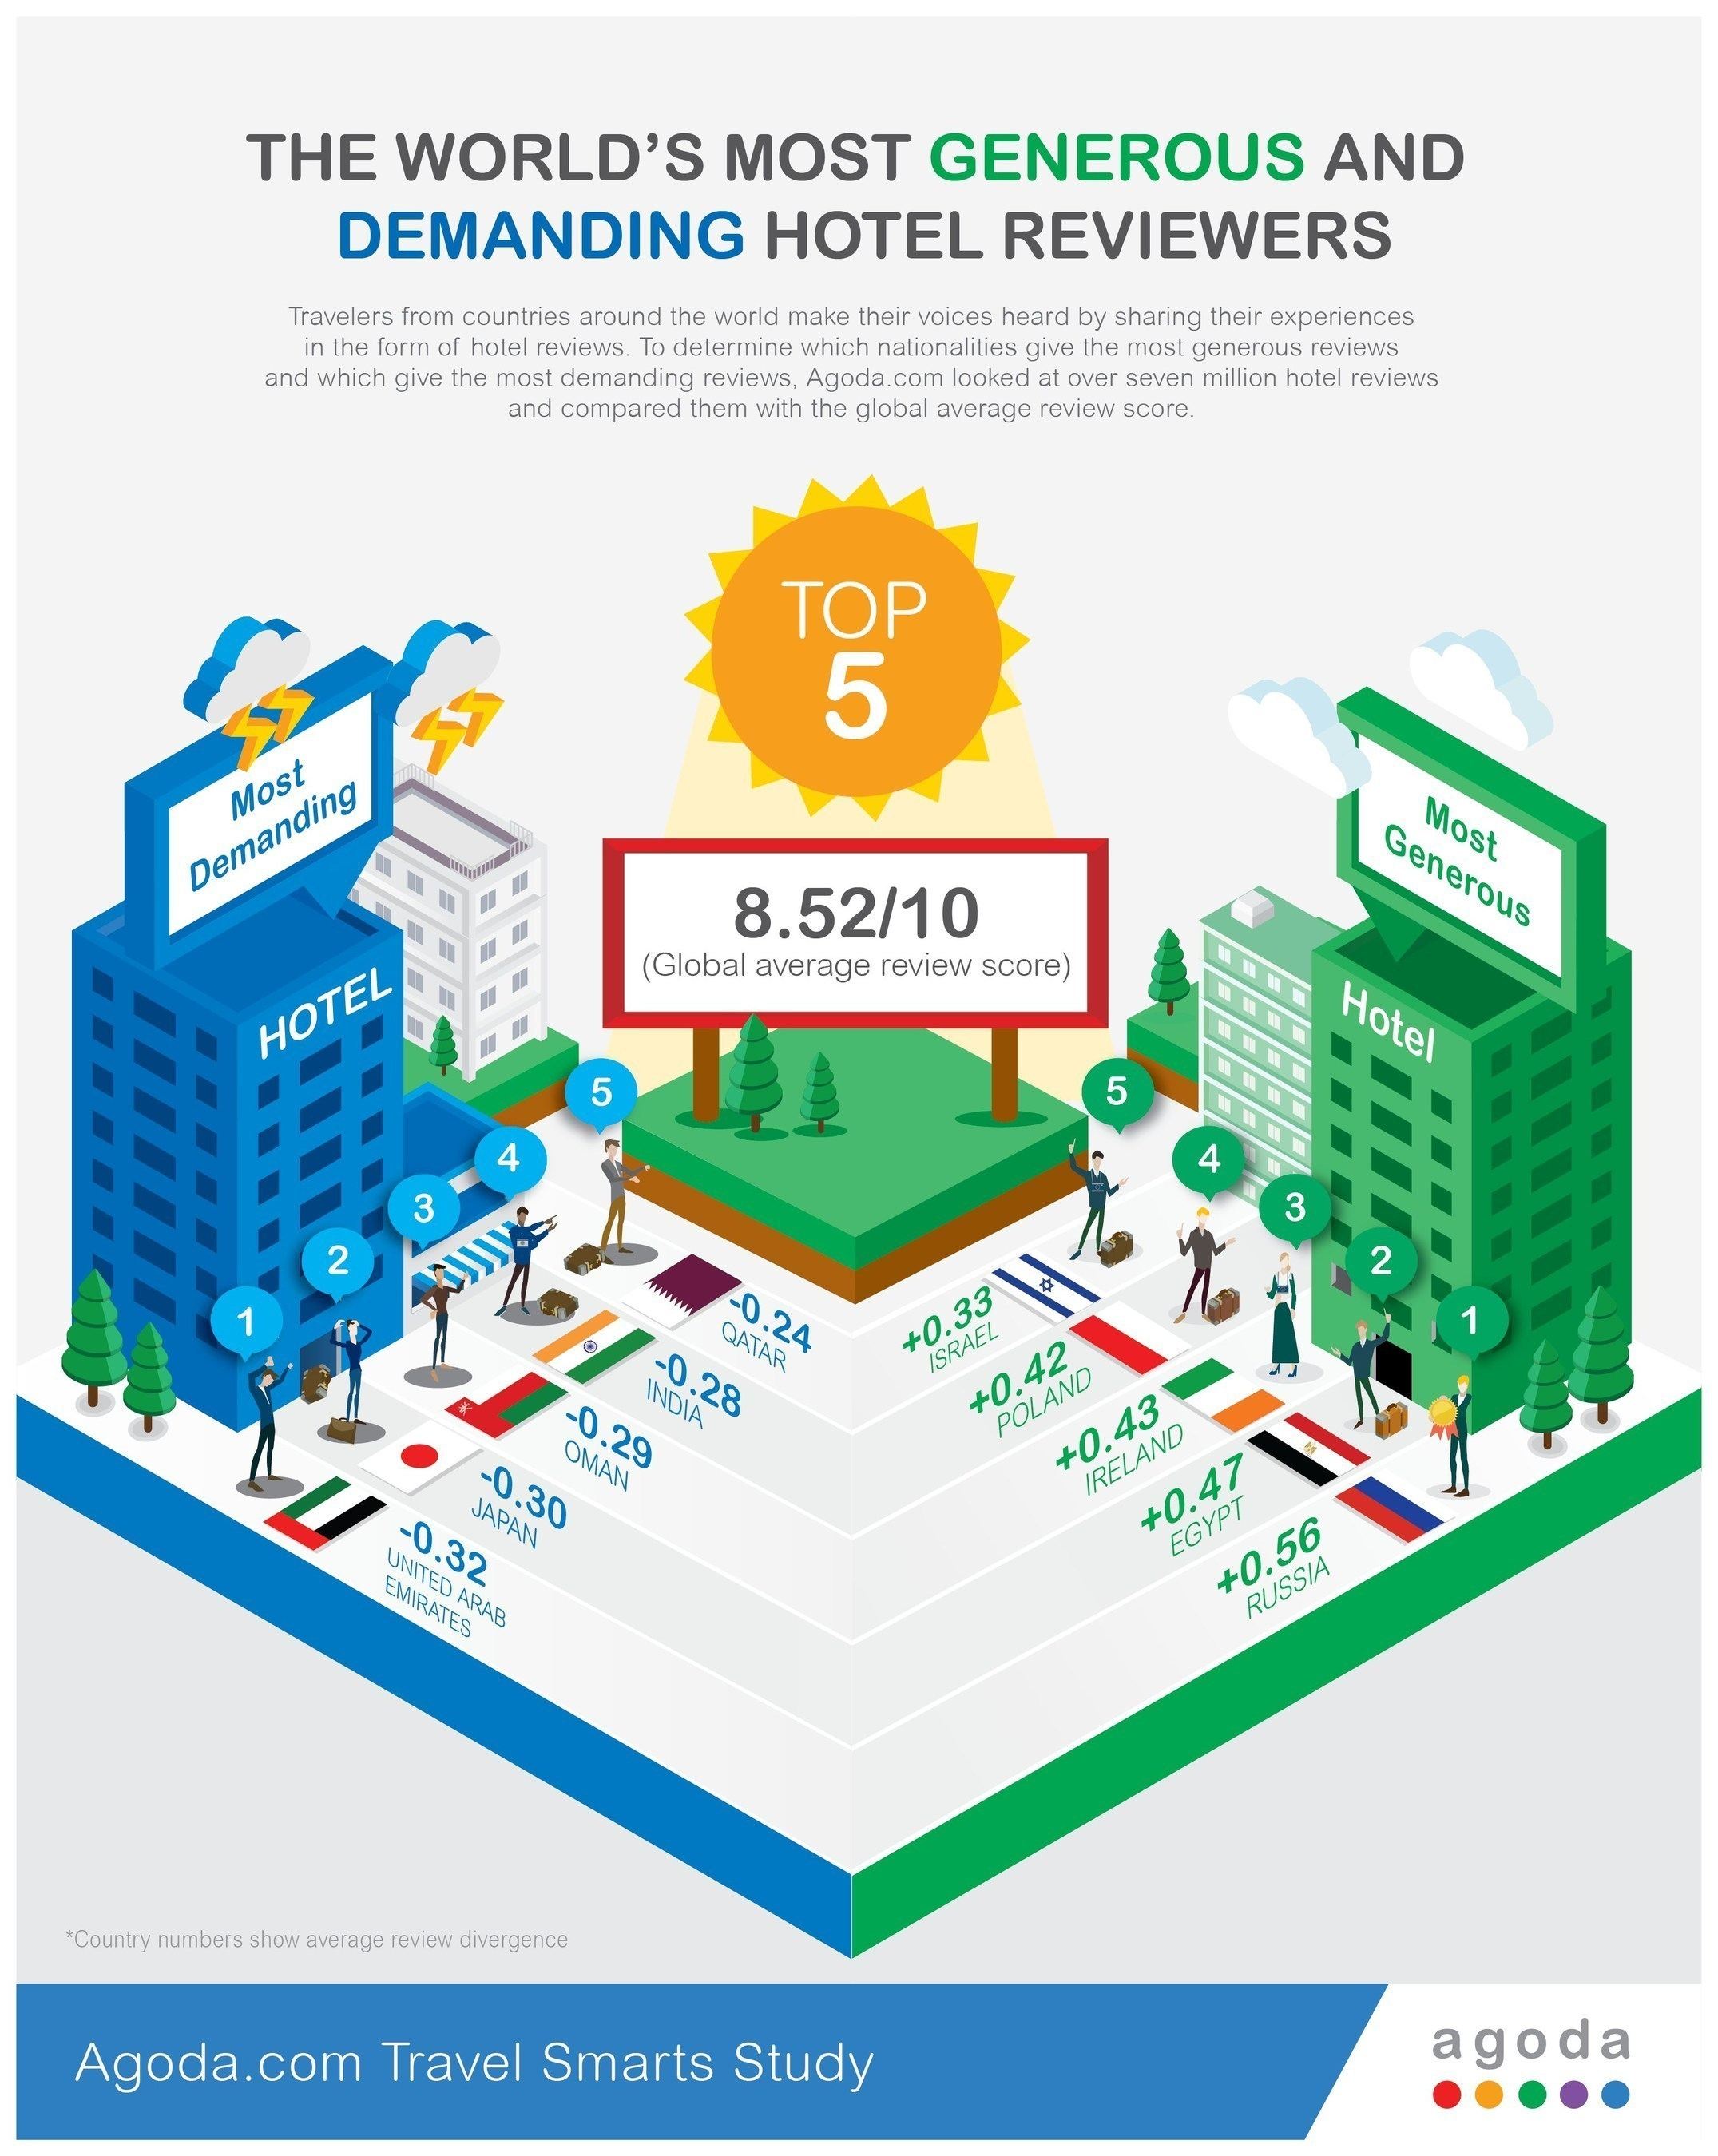 Agoda.com Travel Smarts Infographic showing which nationalities give the most generous and demanding hotel reviews